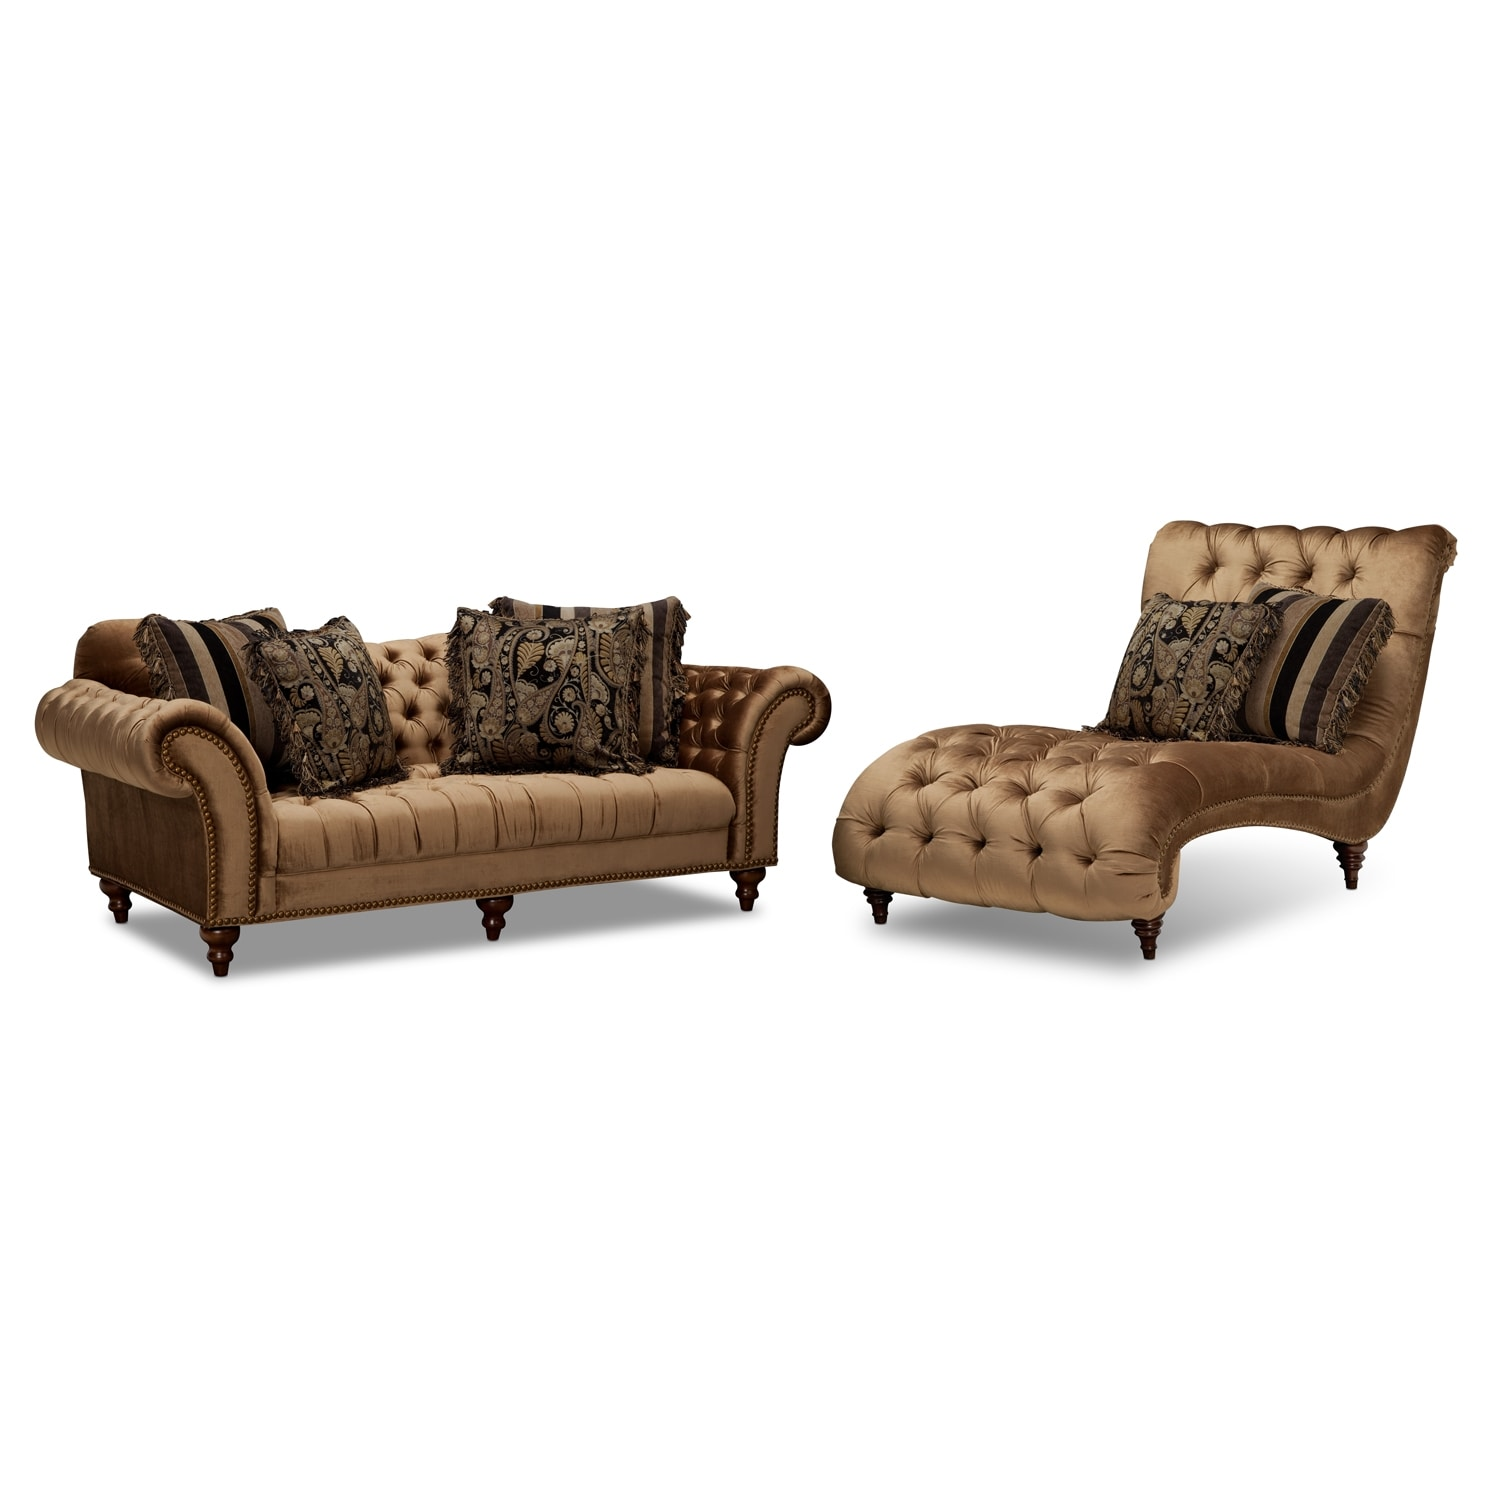 Brittney bronze upholstery 2 pc living room w chaise for Chaise lounge couch set